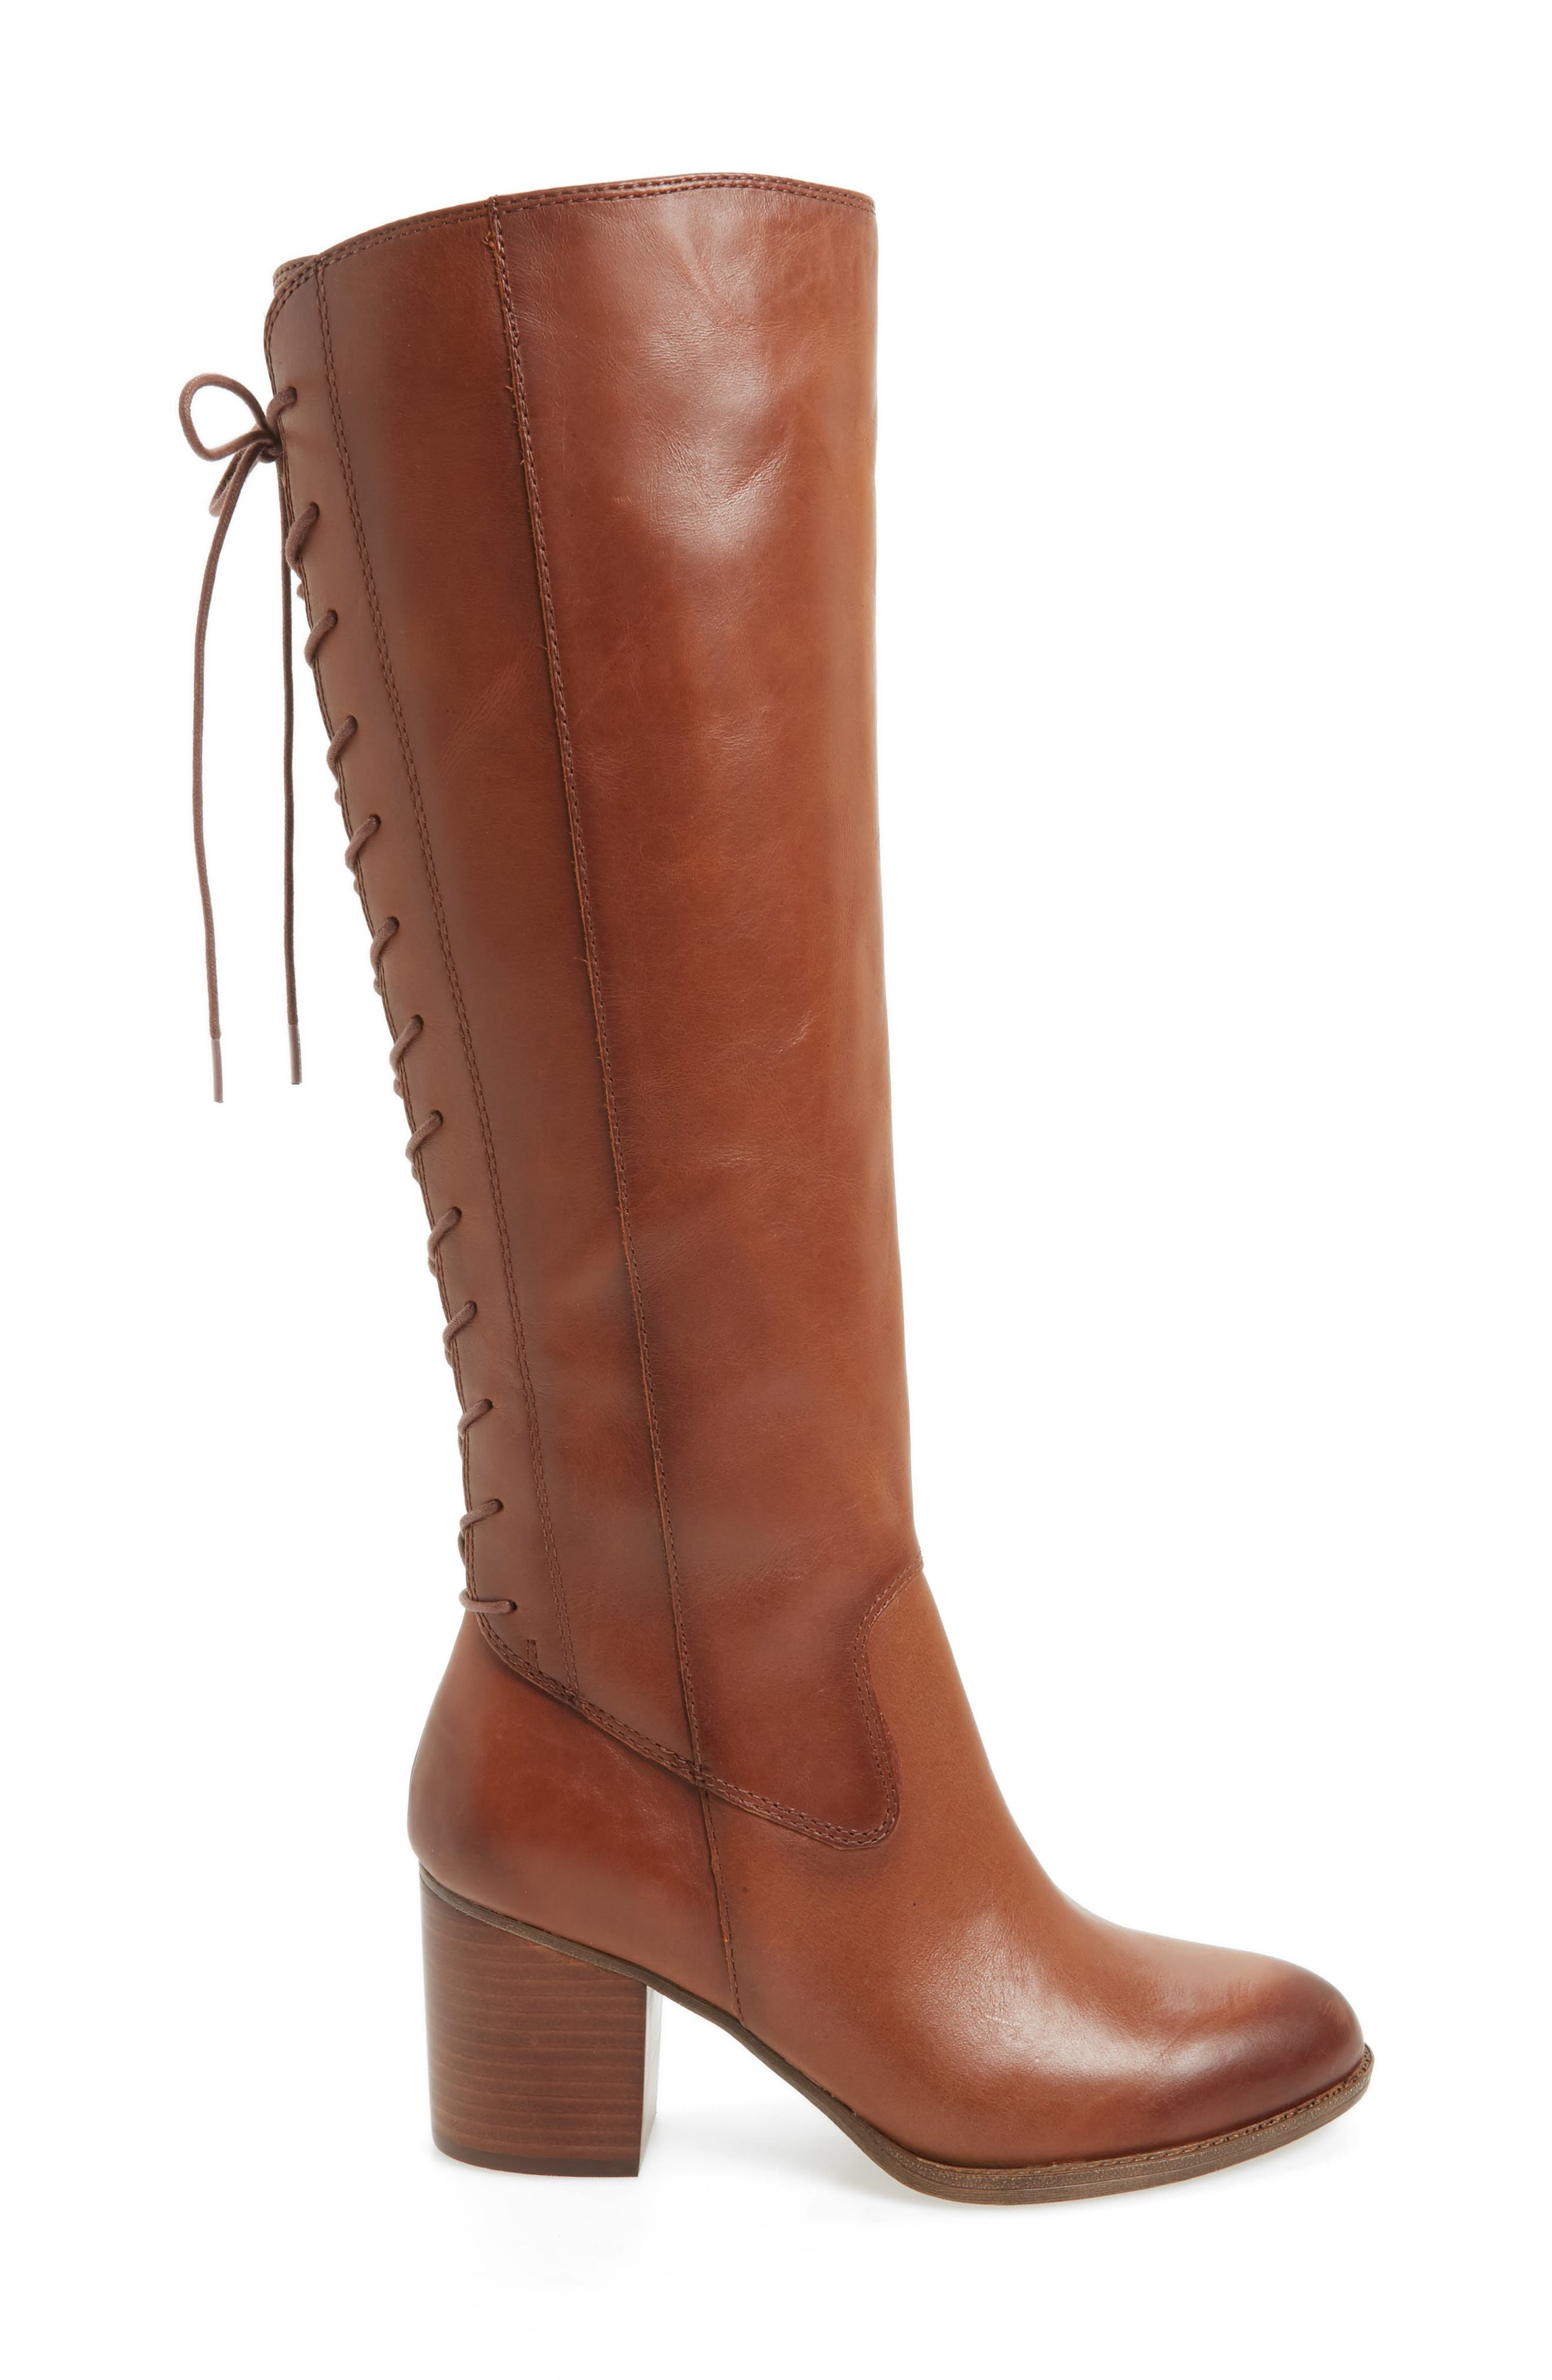 Wheaton Knee High Boot,                             Alternate thumbnail 3, color,                             200